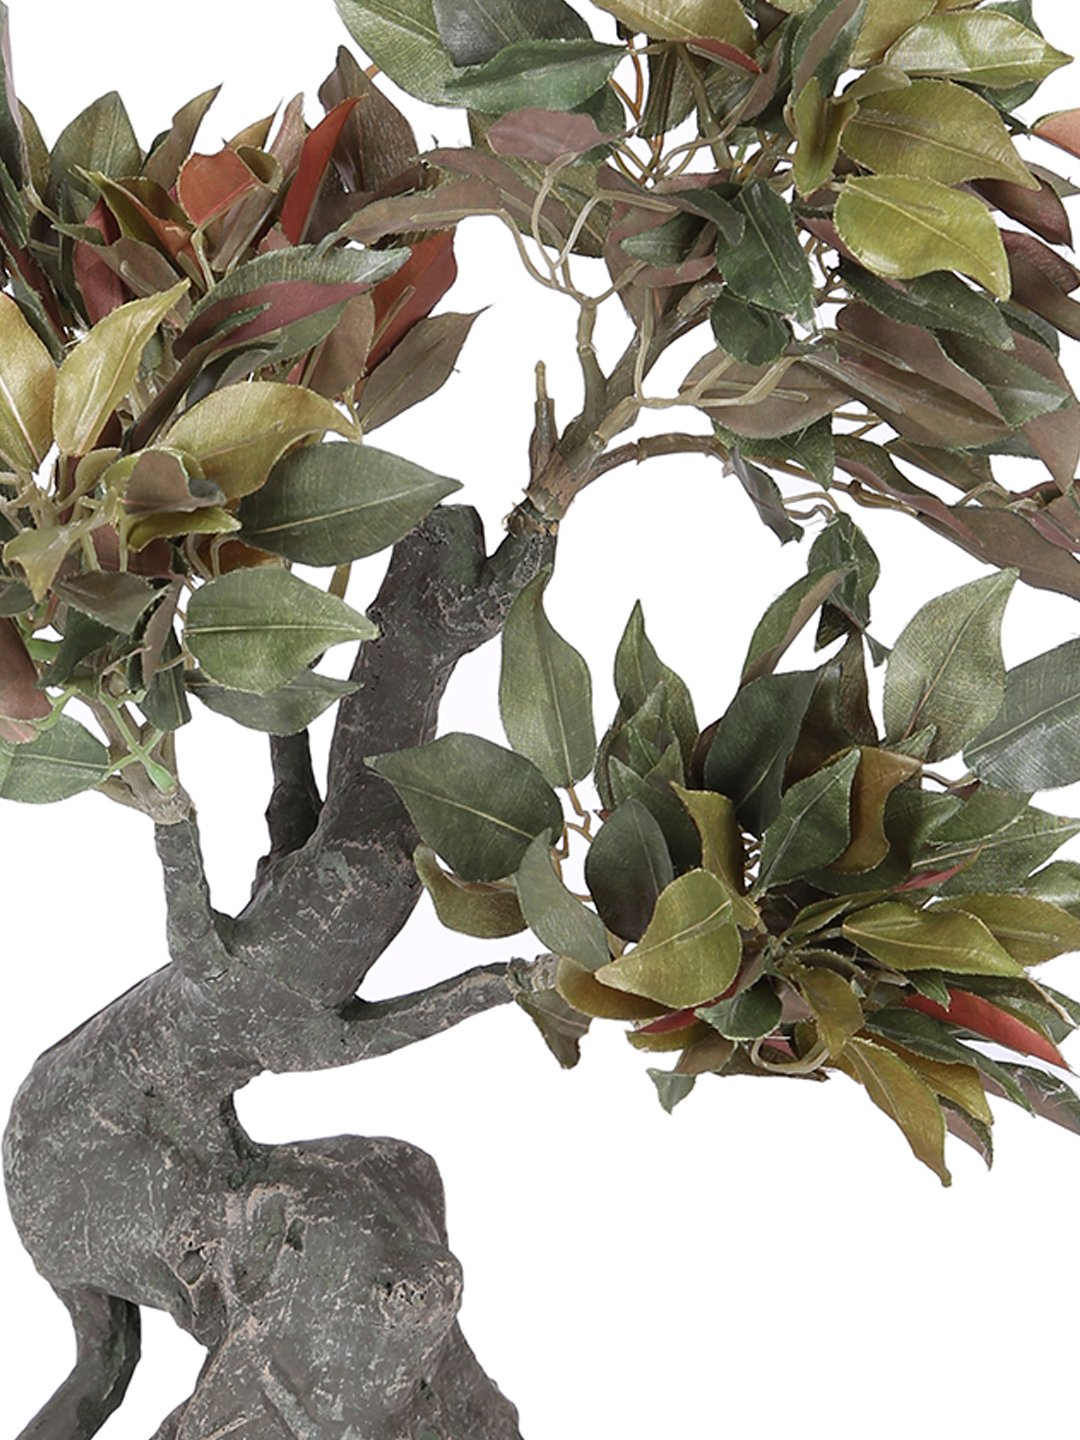 Pollination Artificial Green Ficus Plant Without Pot for Home,Office, Restaurant, Hotel, Party, Balcony, Garden Décor, Indoor (L 30 cm x H 40 cm) - Artificial Flowers & Plants - PolliNation